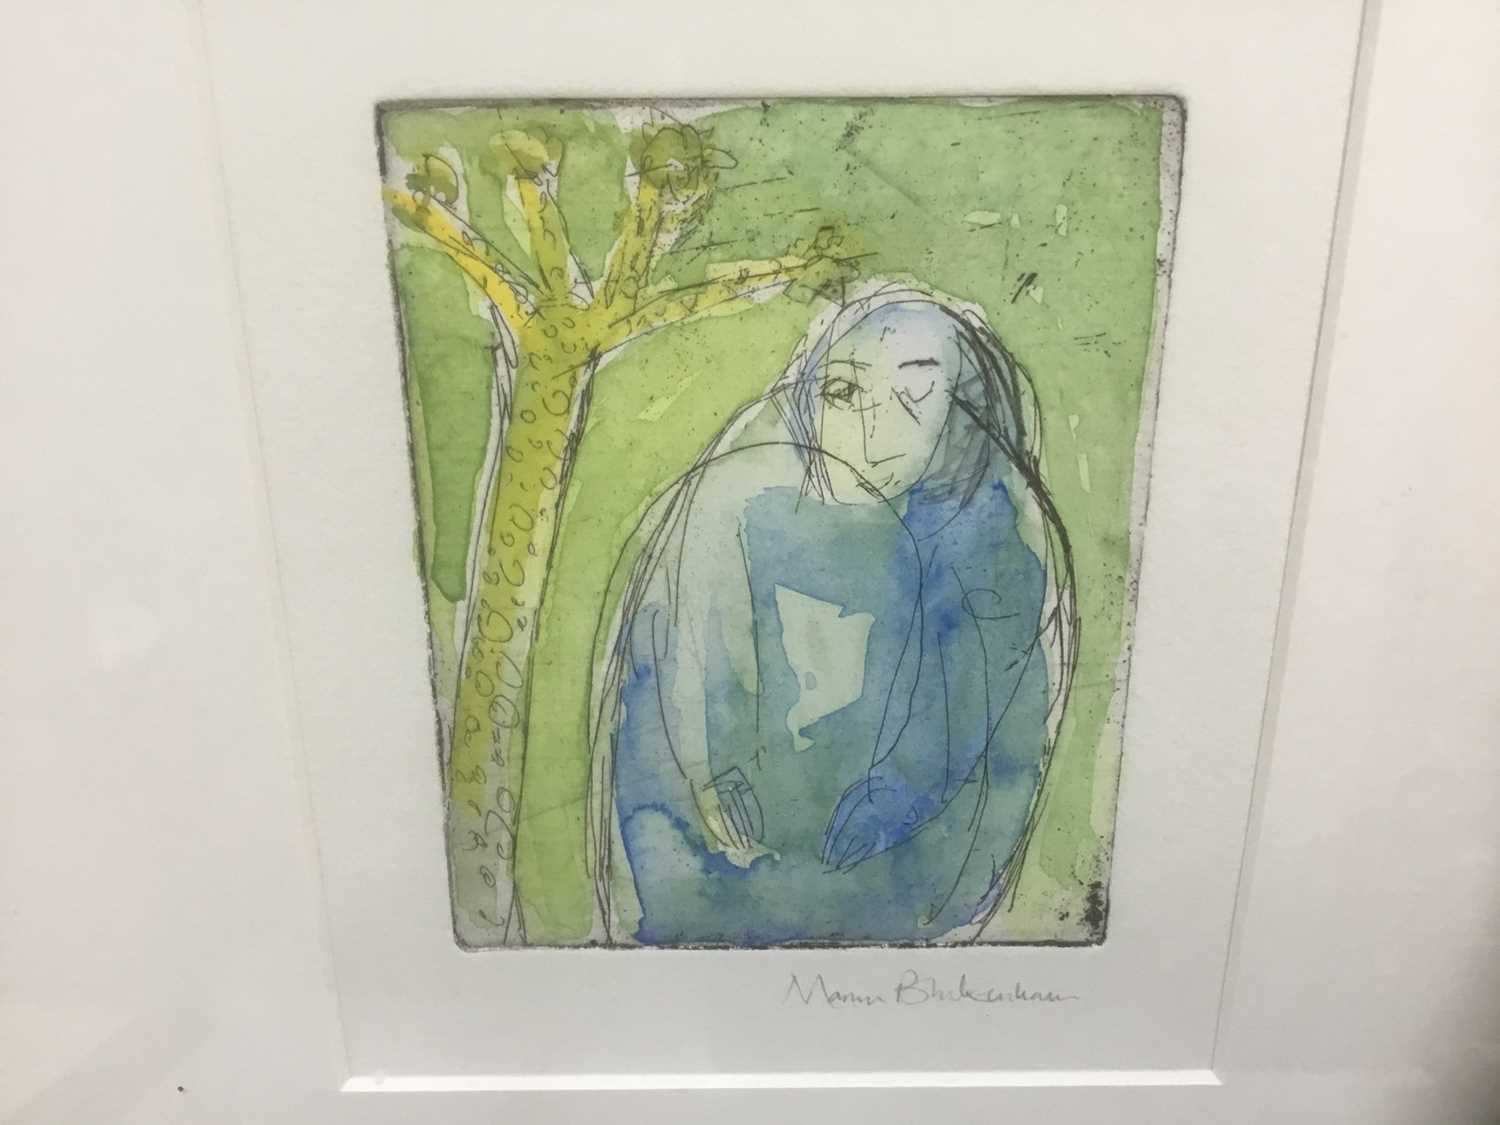 Marcia Blakenham (b. 1946), two signed etchings - figures, one numbered 15/16, in glazed frames - Image 5 of 9